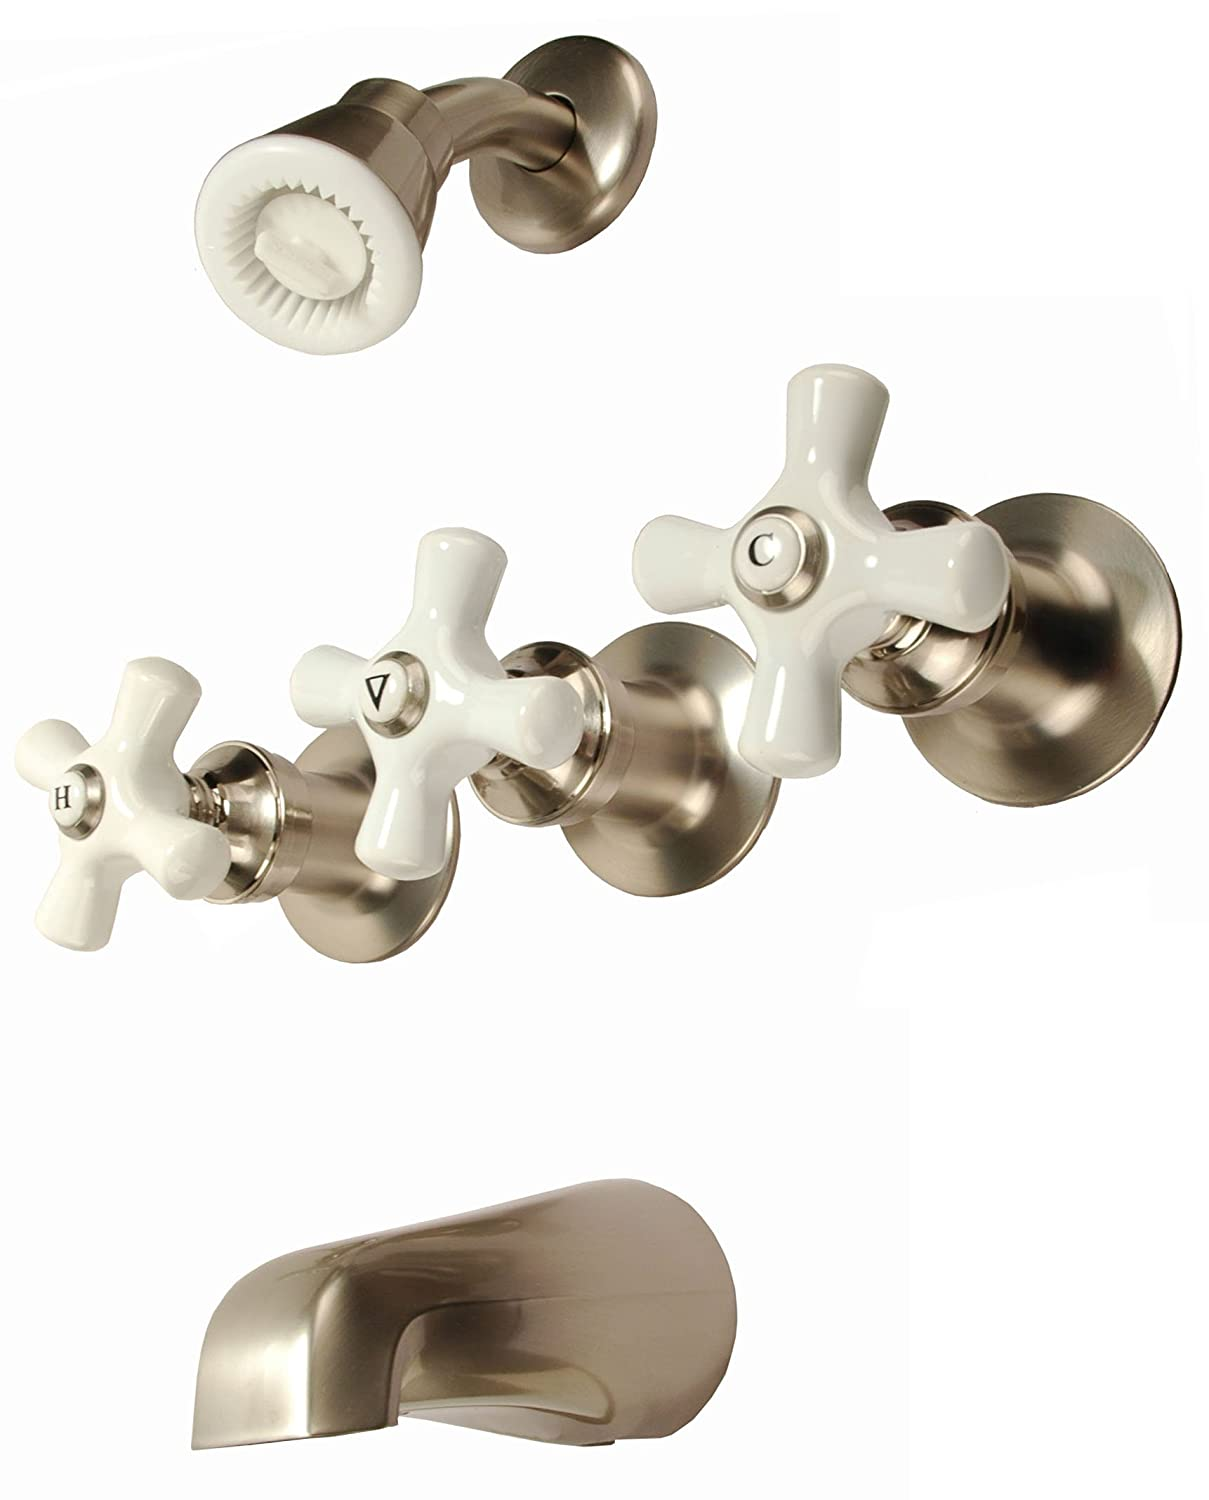 bathroom faucet knobs. 3-handle Tub \u0026 Shower Faucet, Satin Nickel Finish, Porcelain Handle, Compression Stems - By Plumb USA Bathtub And Showerhead Faucet Systems Amazon.com Bathroom Knobs